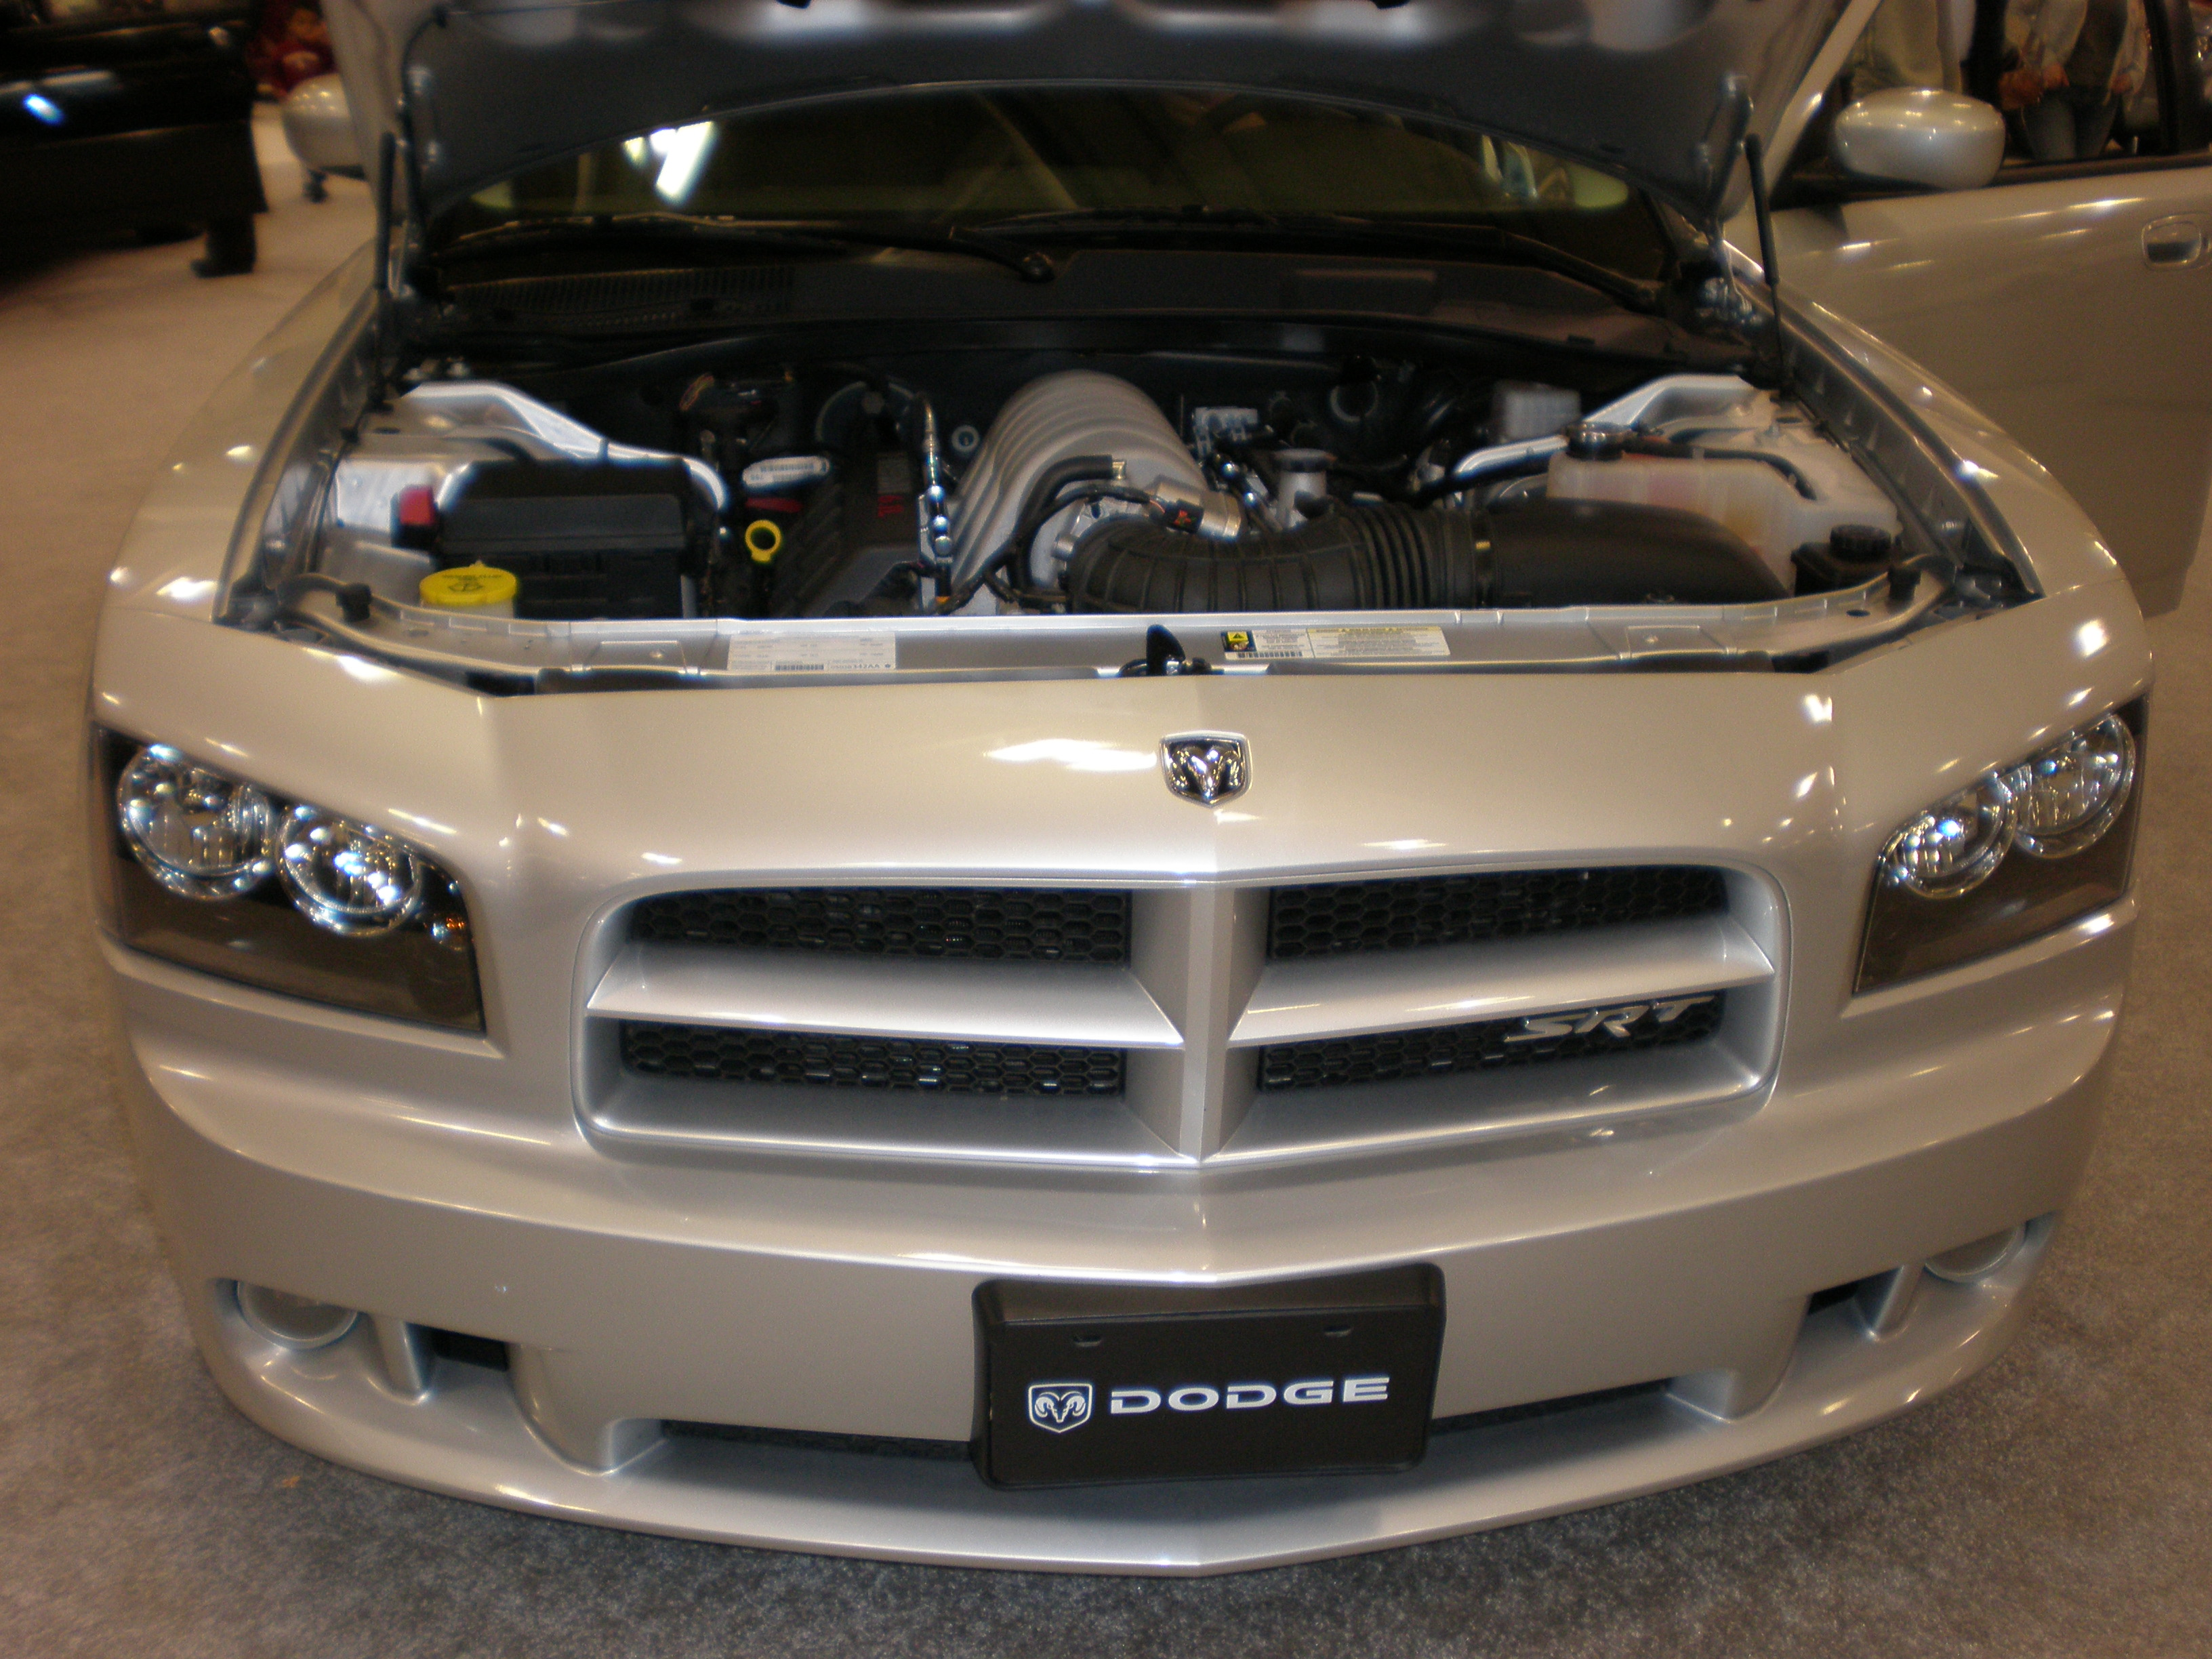 Stunning 08 dodge charger accessories aratorn sport cars for 2008 dodge charger motor